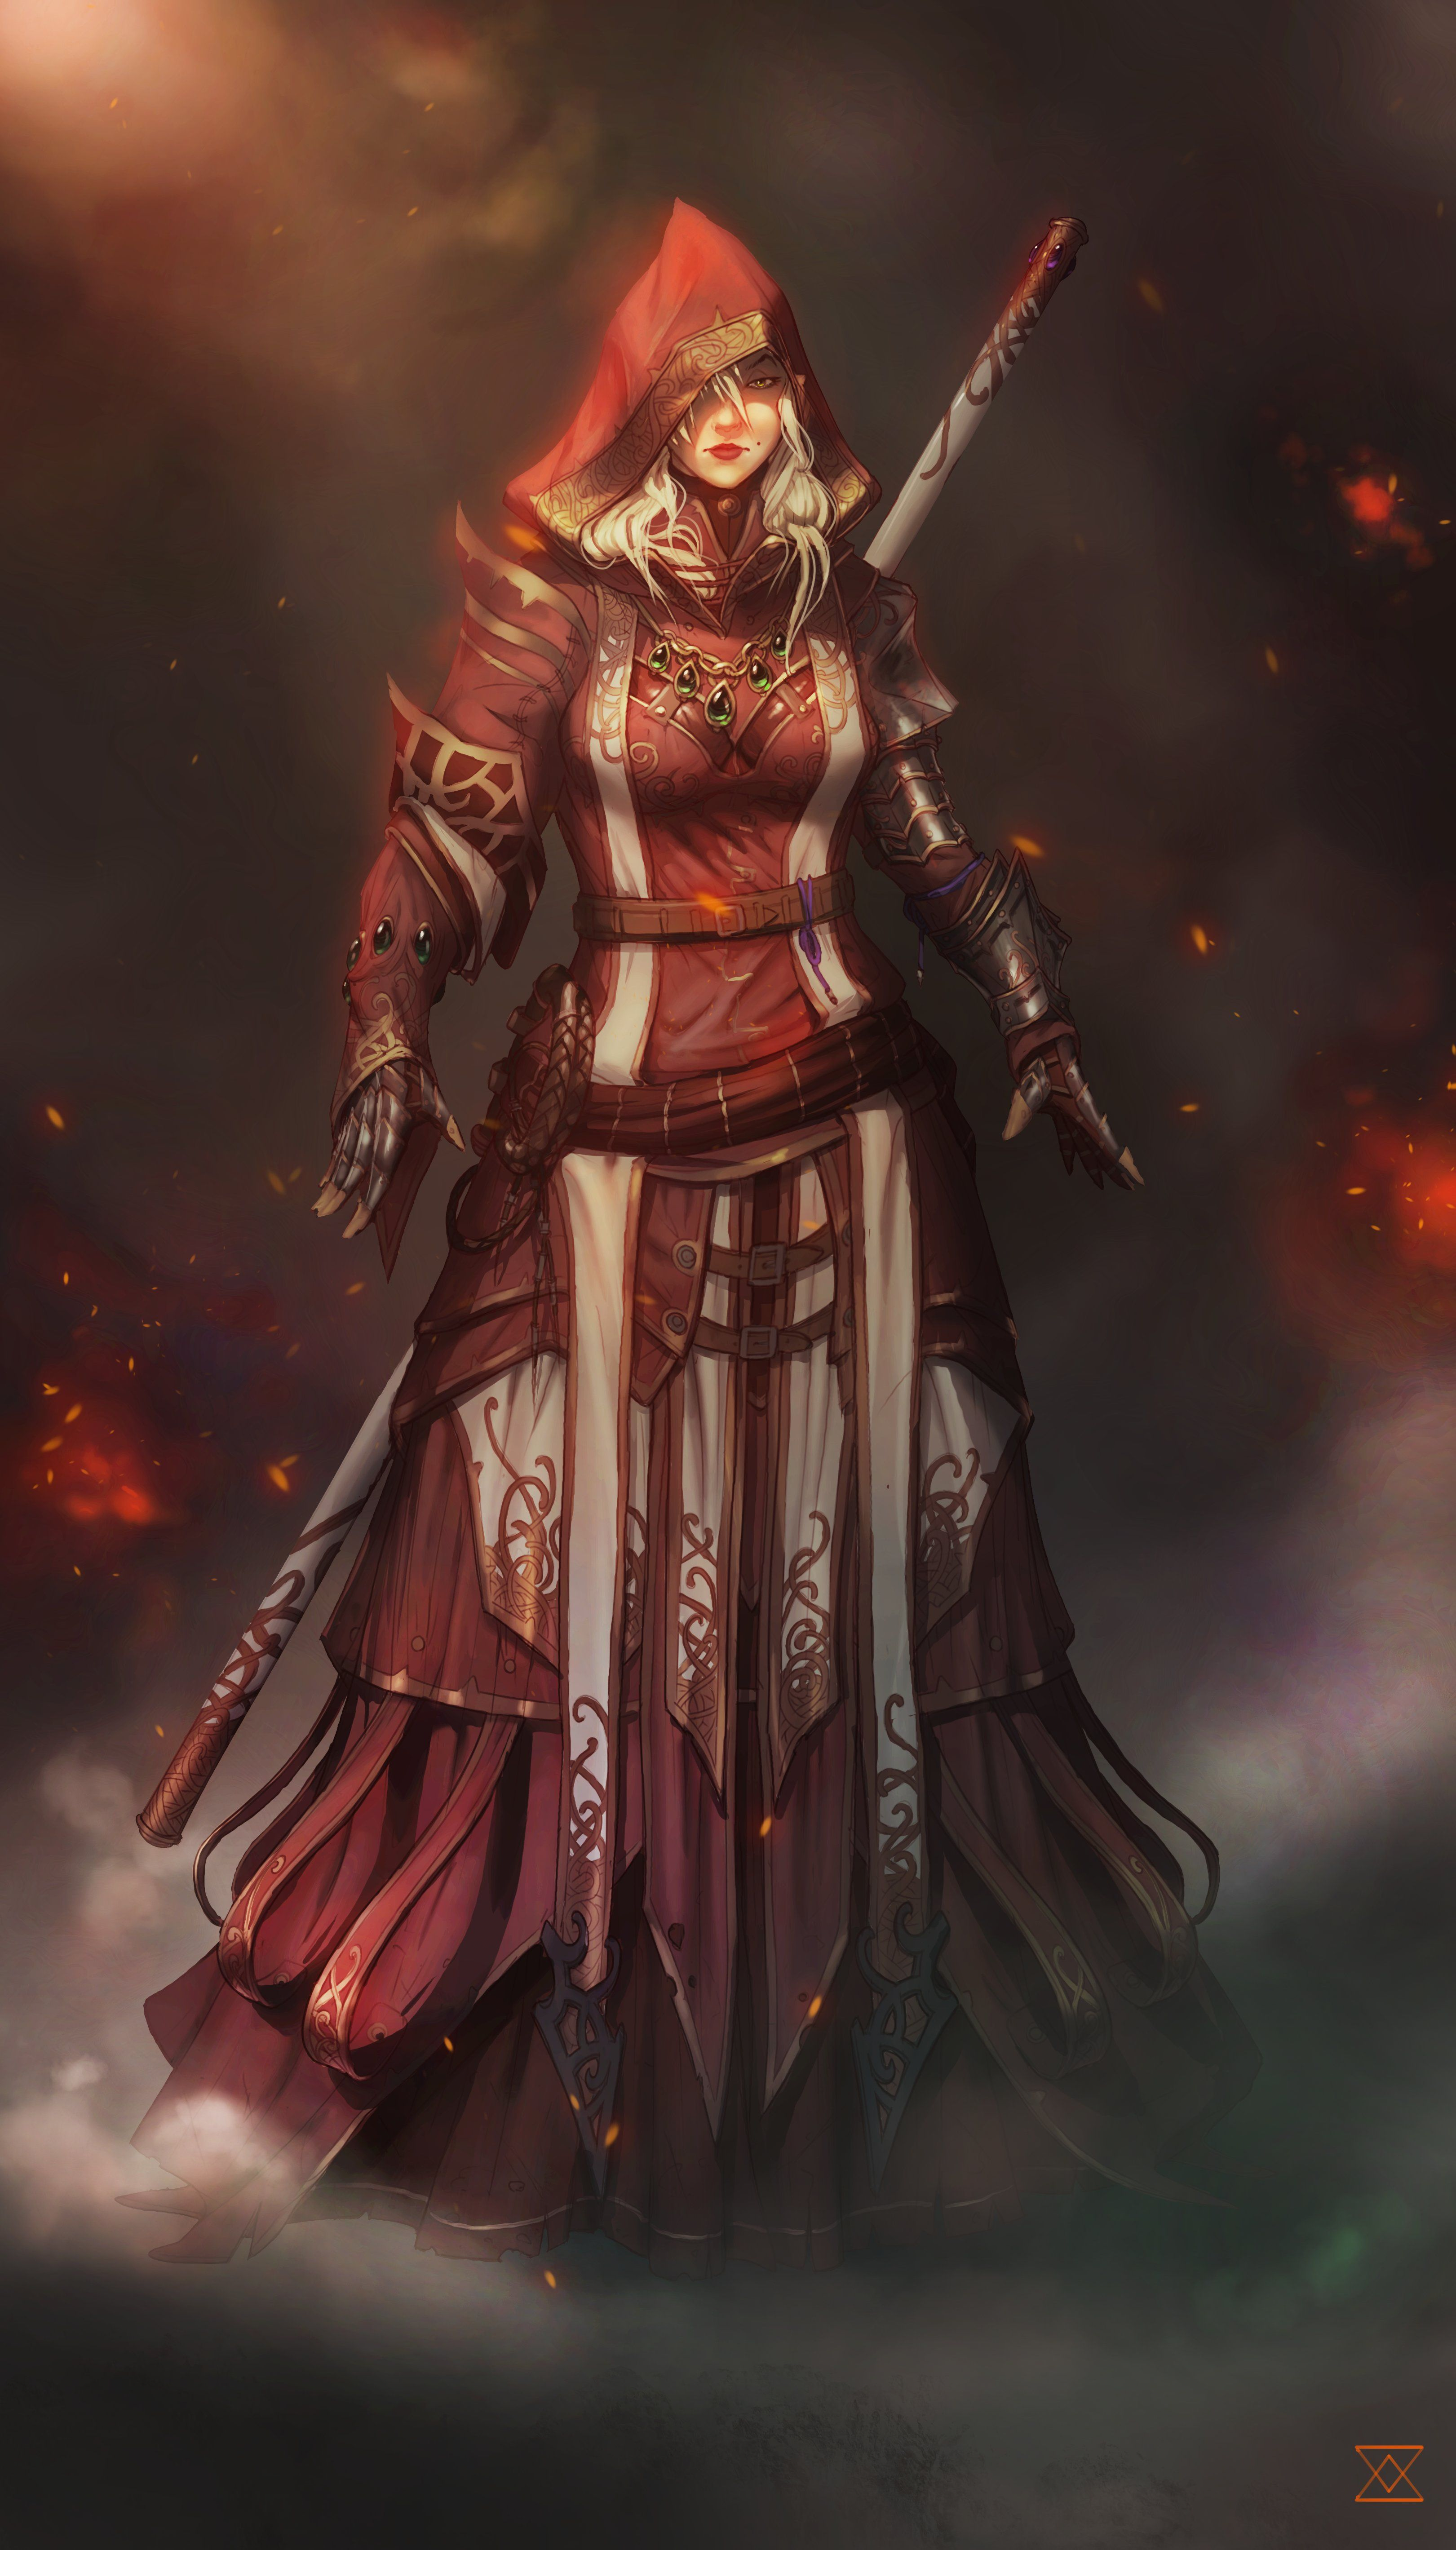 Iam the wielder of the fire will, watch out creatures of the dark, Iam coming for you.